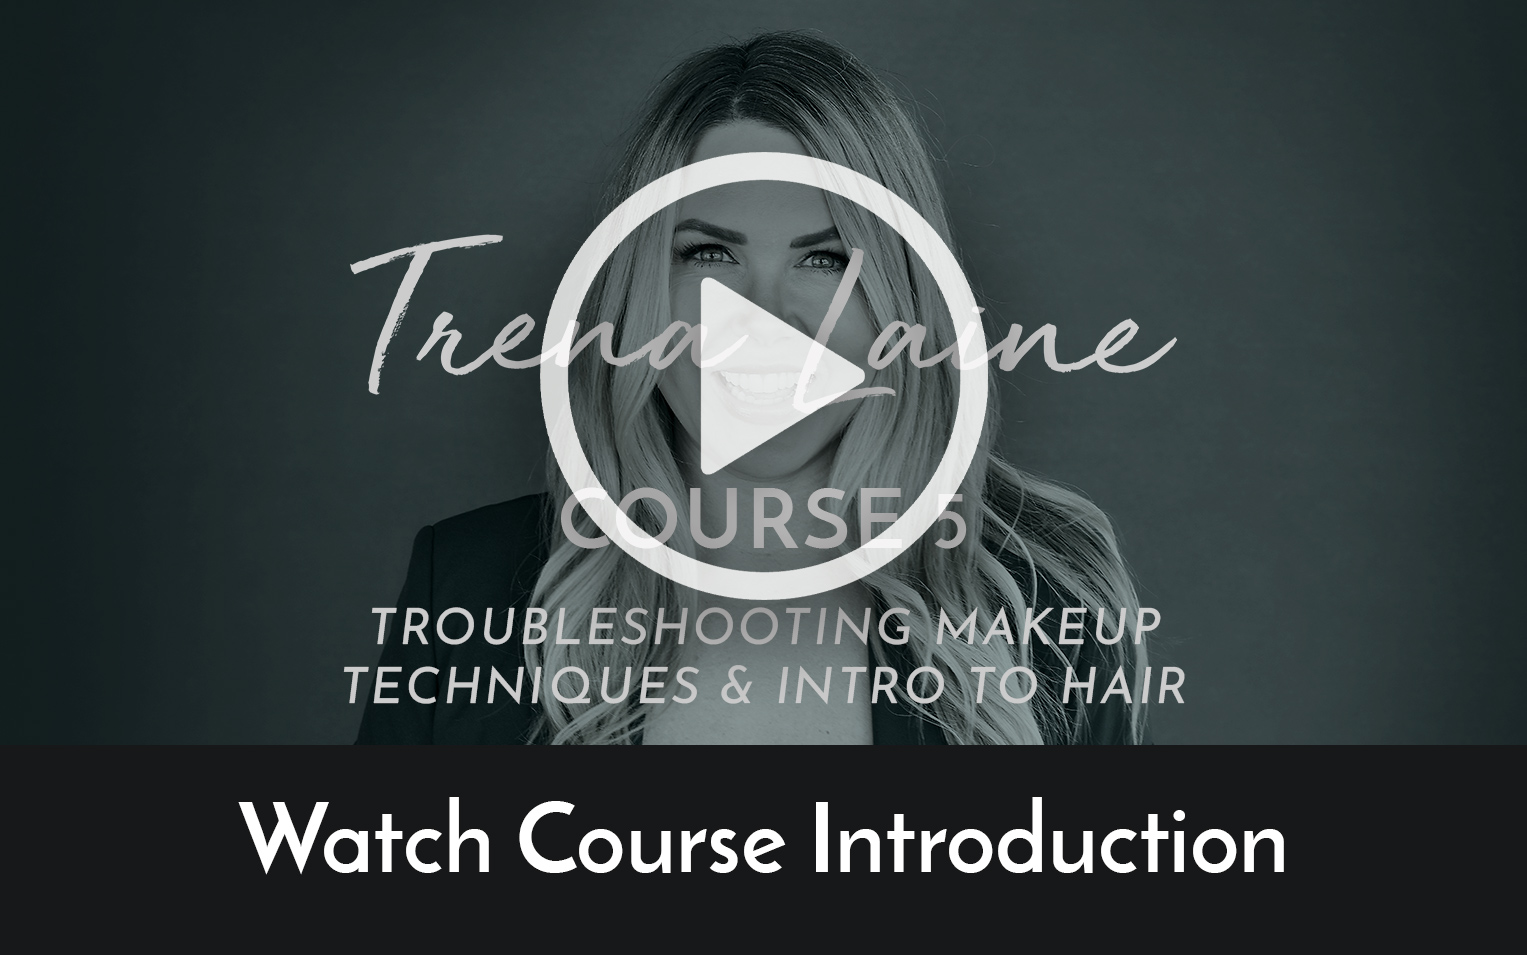 Course 5 Troubleshooting Makeup Techniques Amp Intro To